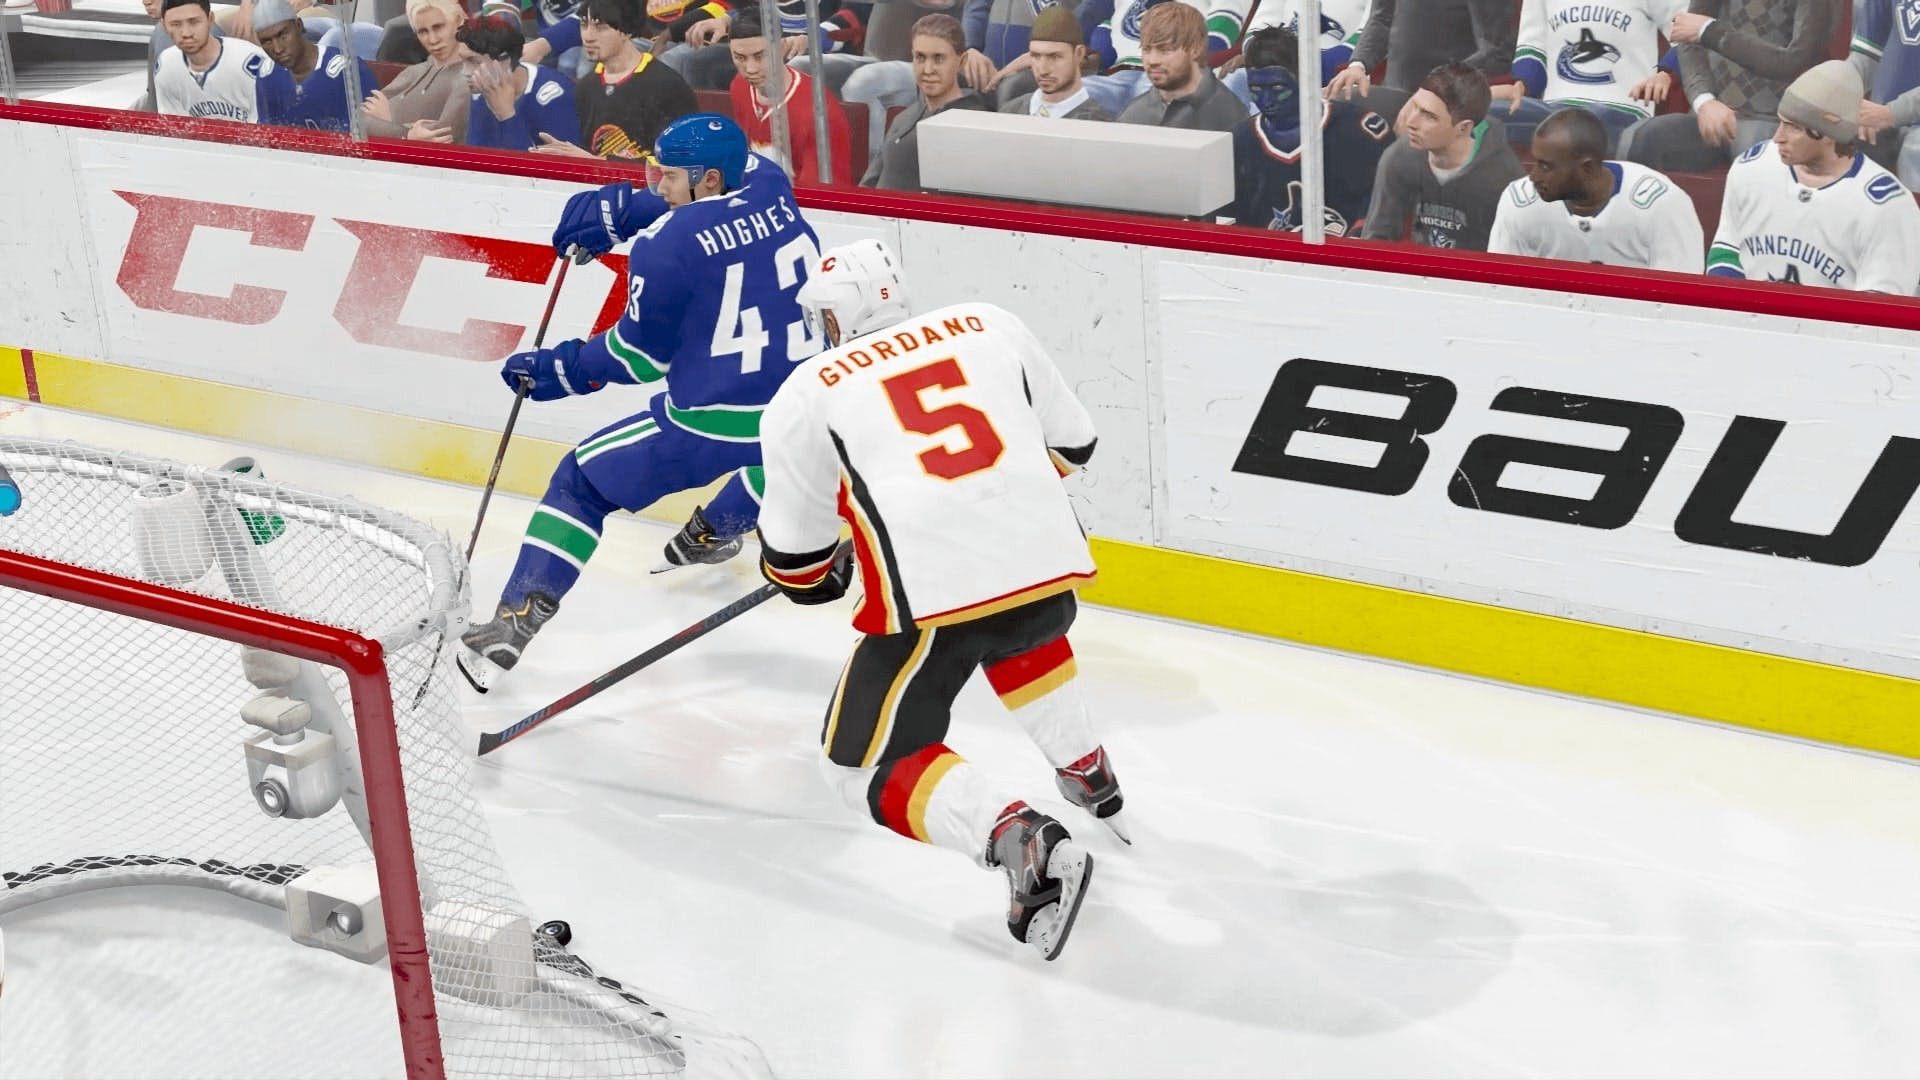 Screenshot from the game NHL 21